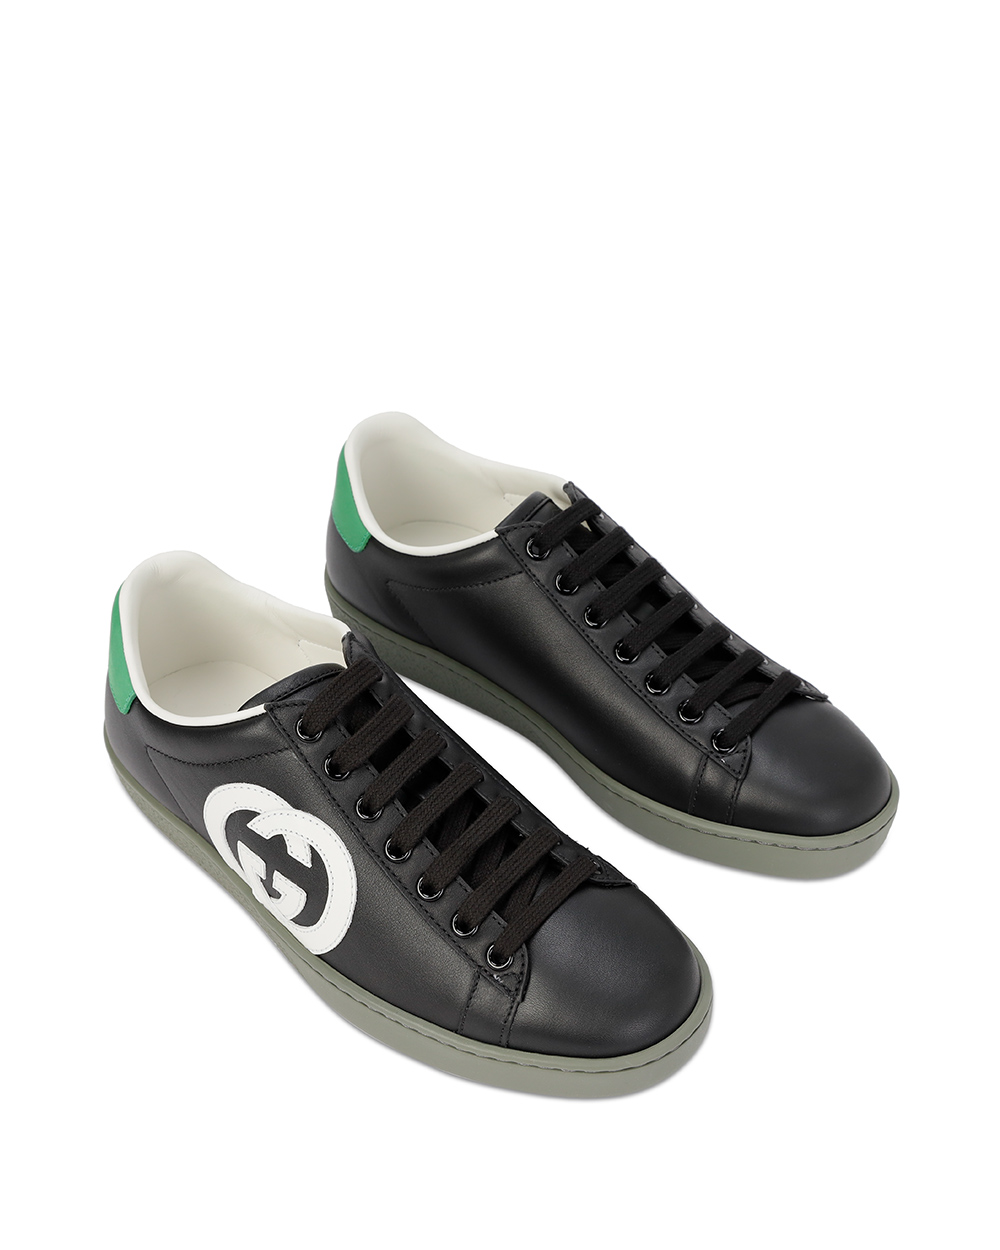 GG Leather Sneakers 1